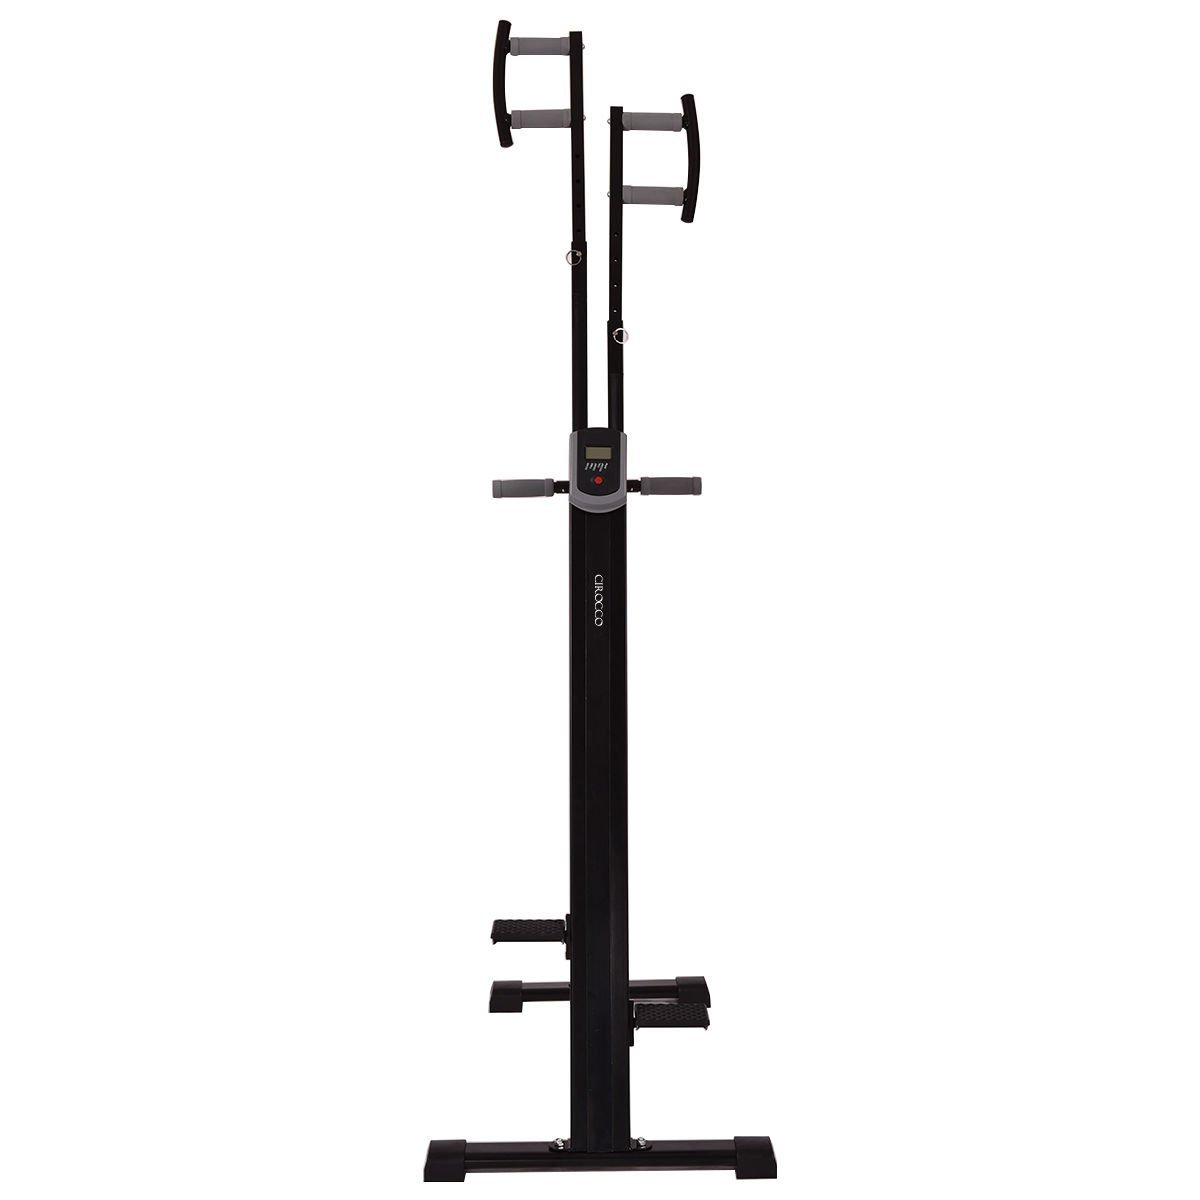 Cirocco Folding Stair Stepper Vertical Climber Exercise Cardio Machine w/ LCD Display | Strong Sturdy Total Full Body Aerobic Anaerobic Workout Fitness Equipment for Calorie Fat Burn Leg Bicep Triceps by Cirocco (Image #4)